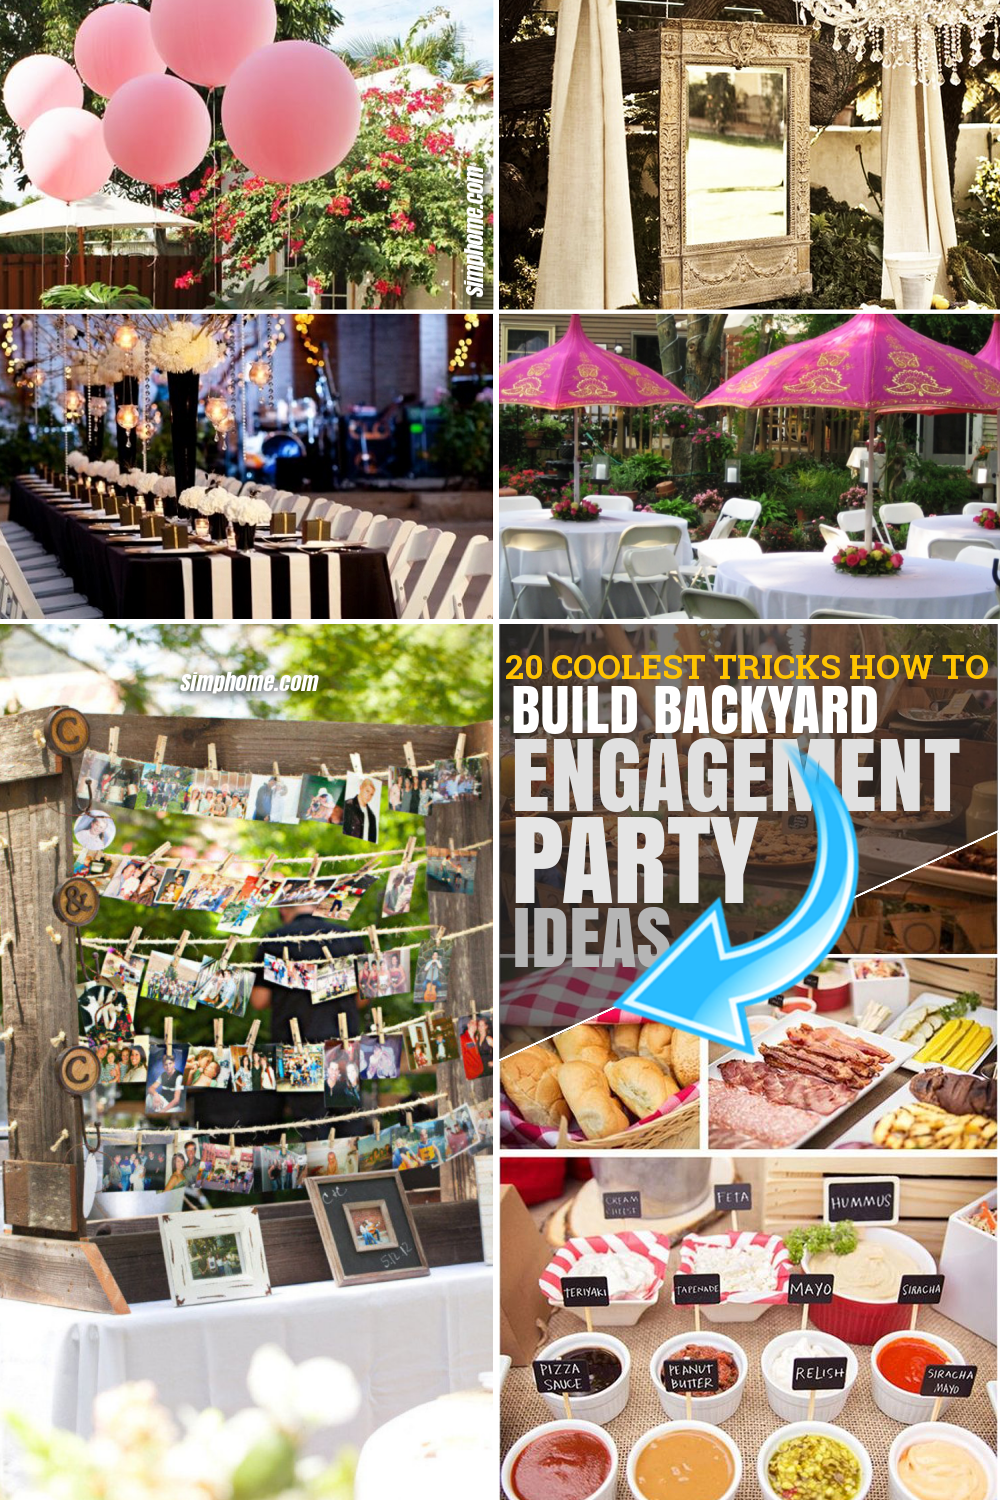 SIMPHOME.COM .How to Build Backyard Engagement Party Ideas.Pinterest Featured